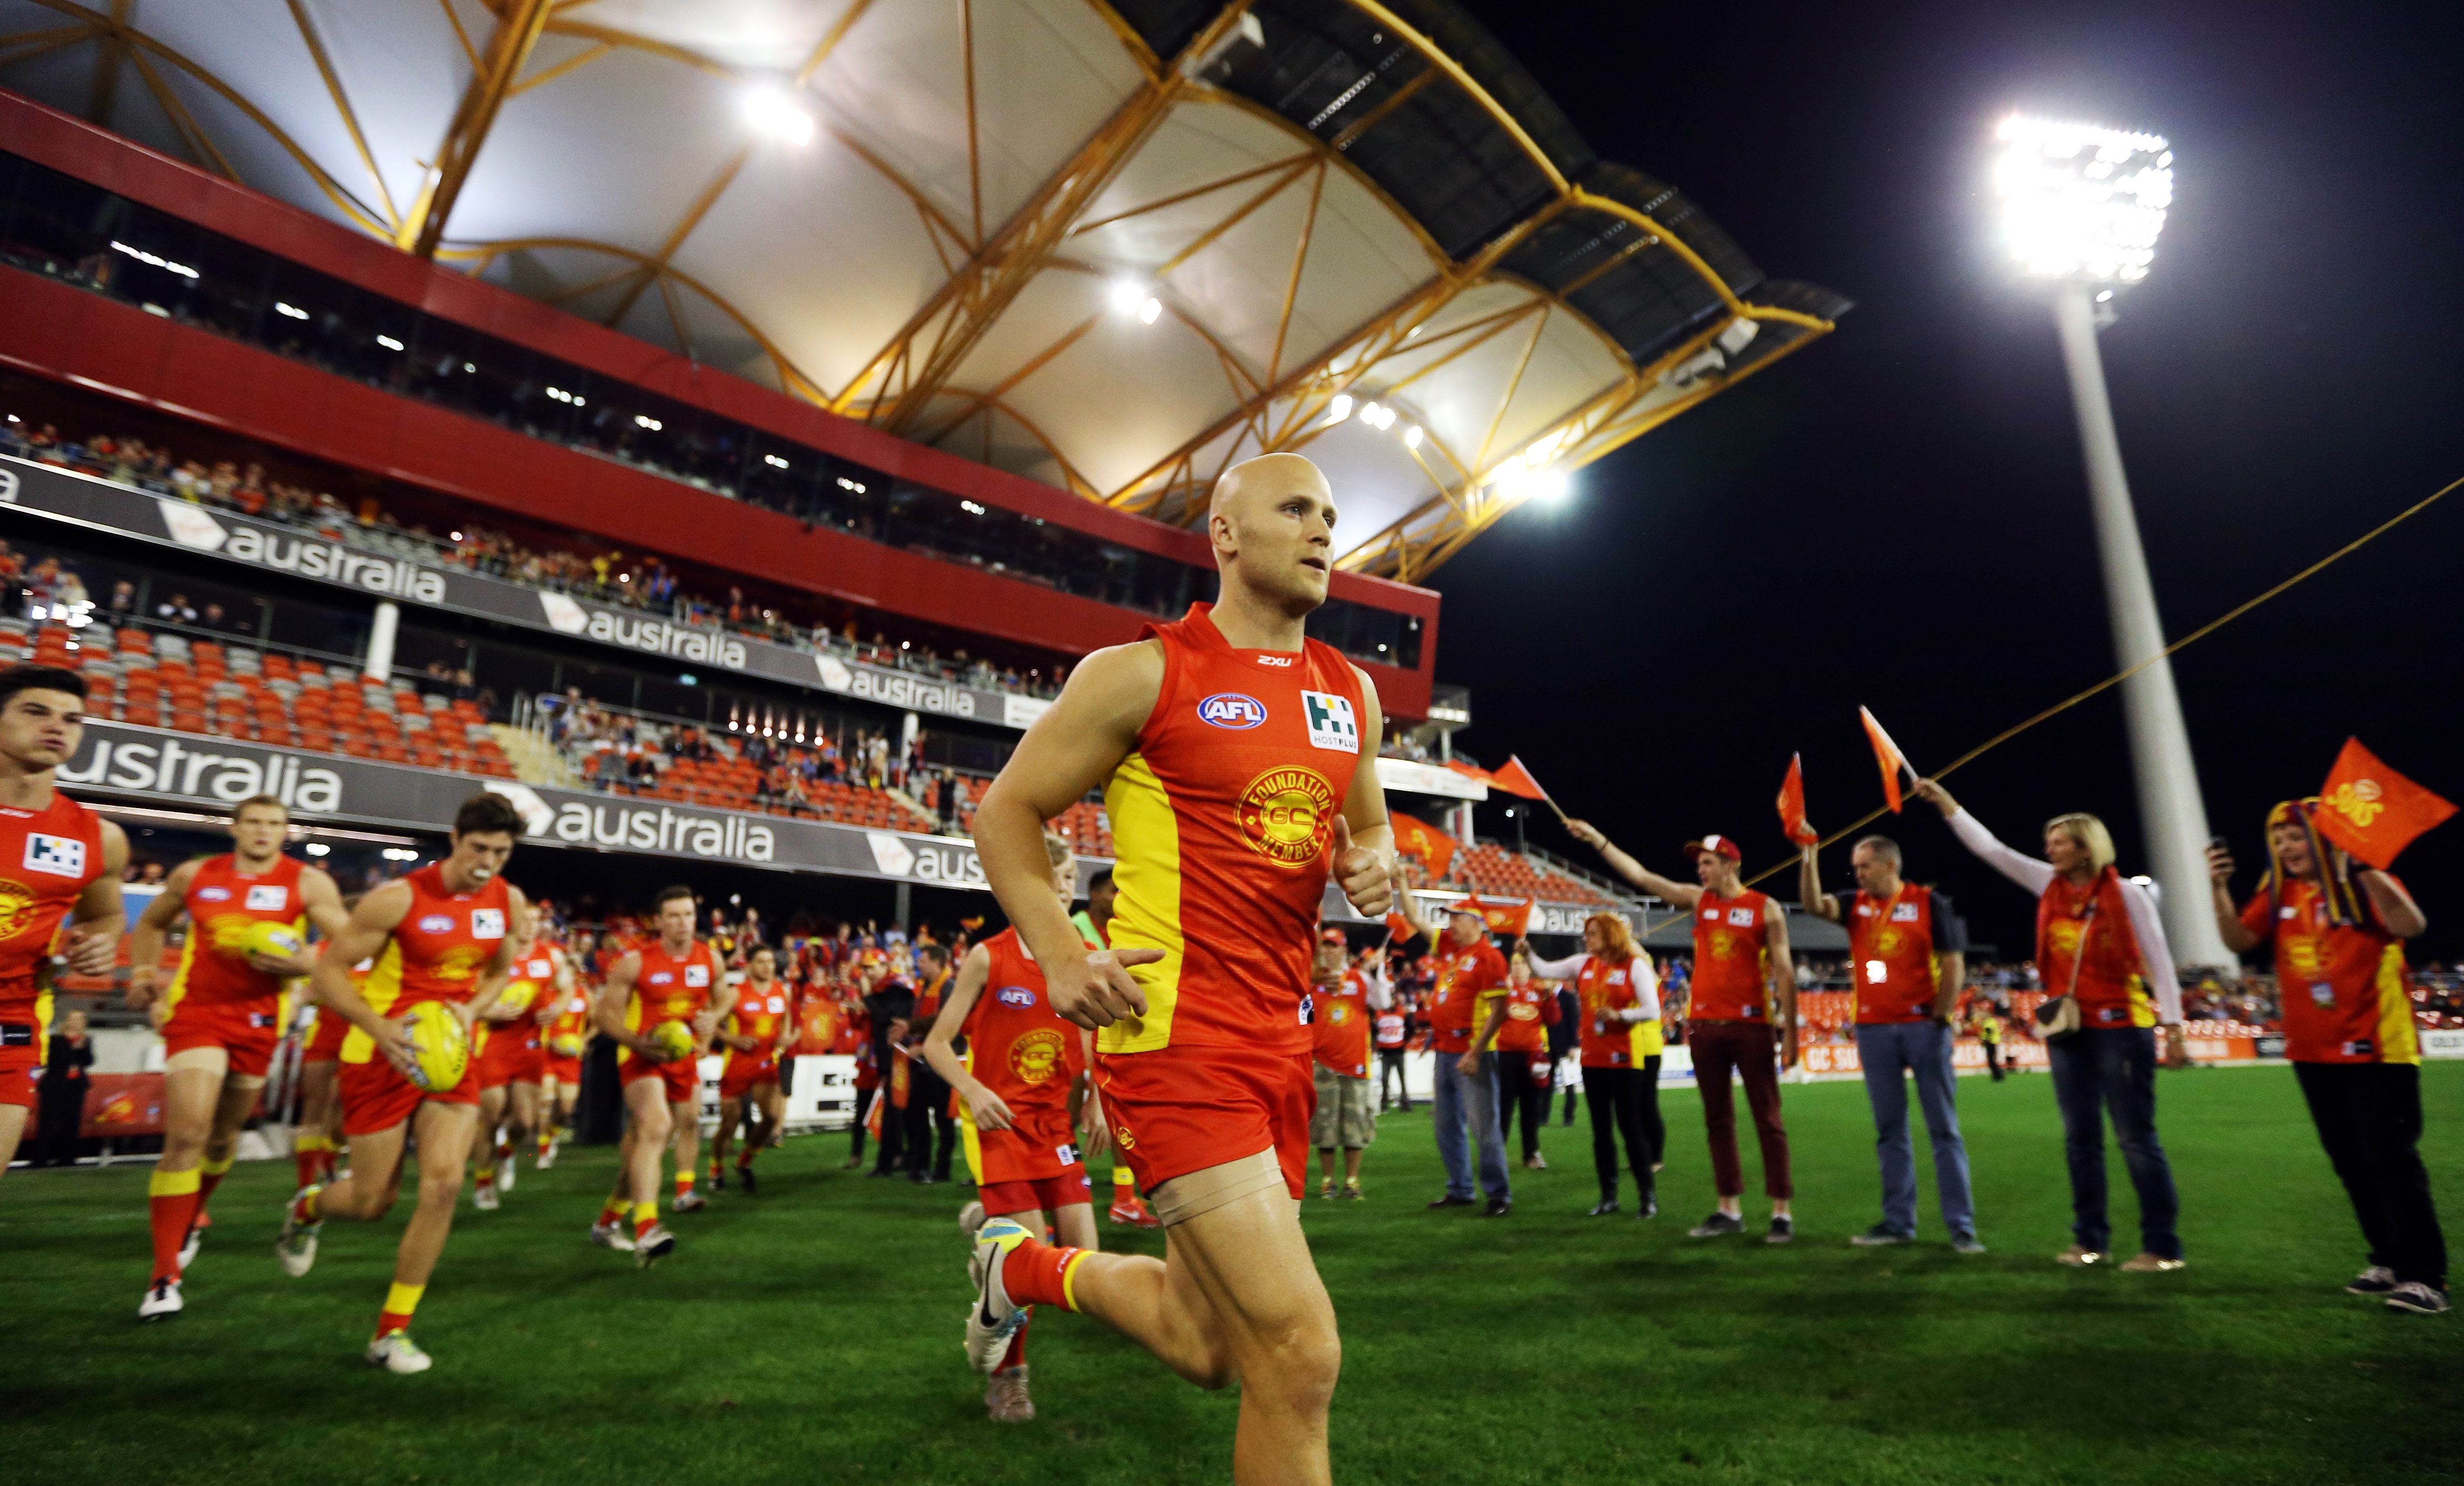 Skipper Gary Ablett leads his team out onto the field to